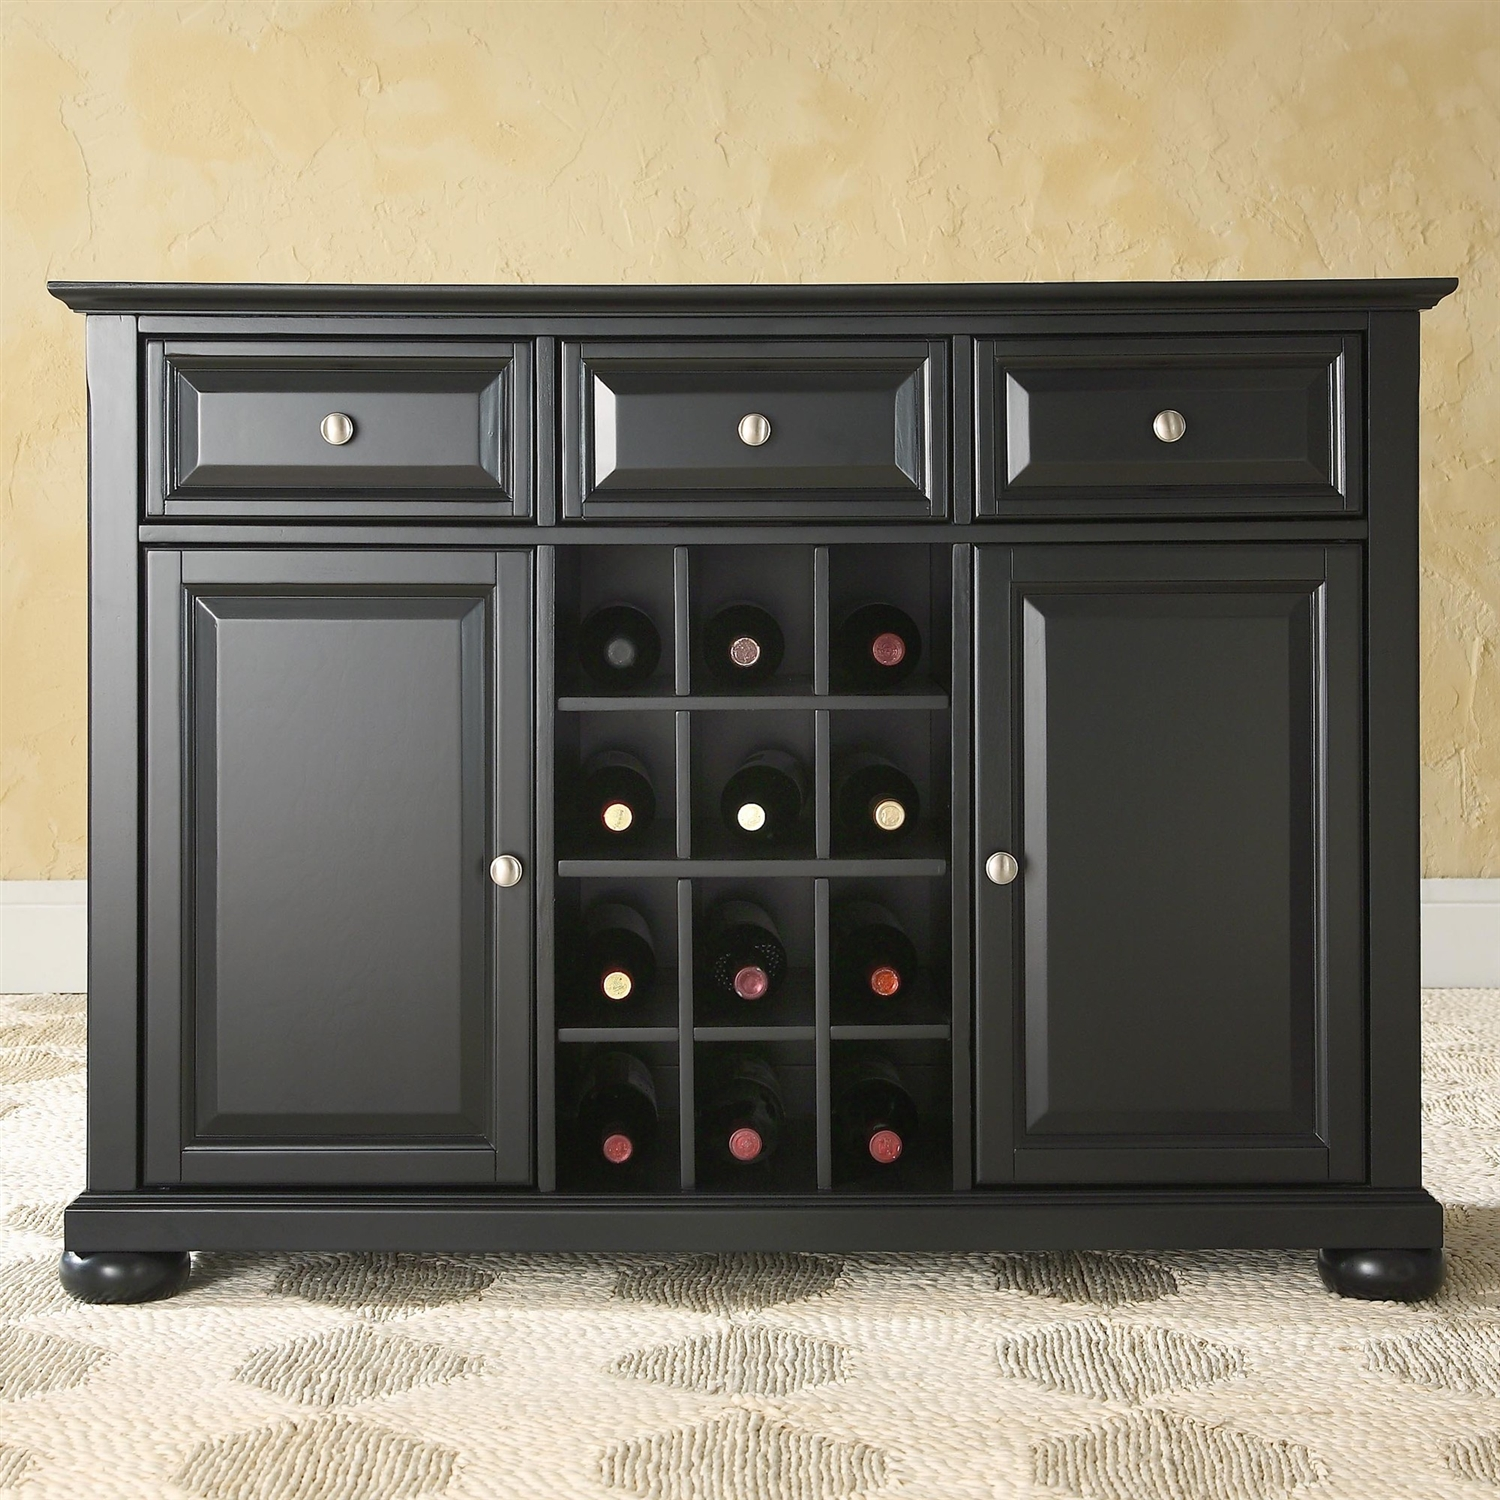 Black Dining Room Buffet Sideboard Cabinet with Wine Storage ...